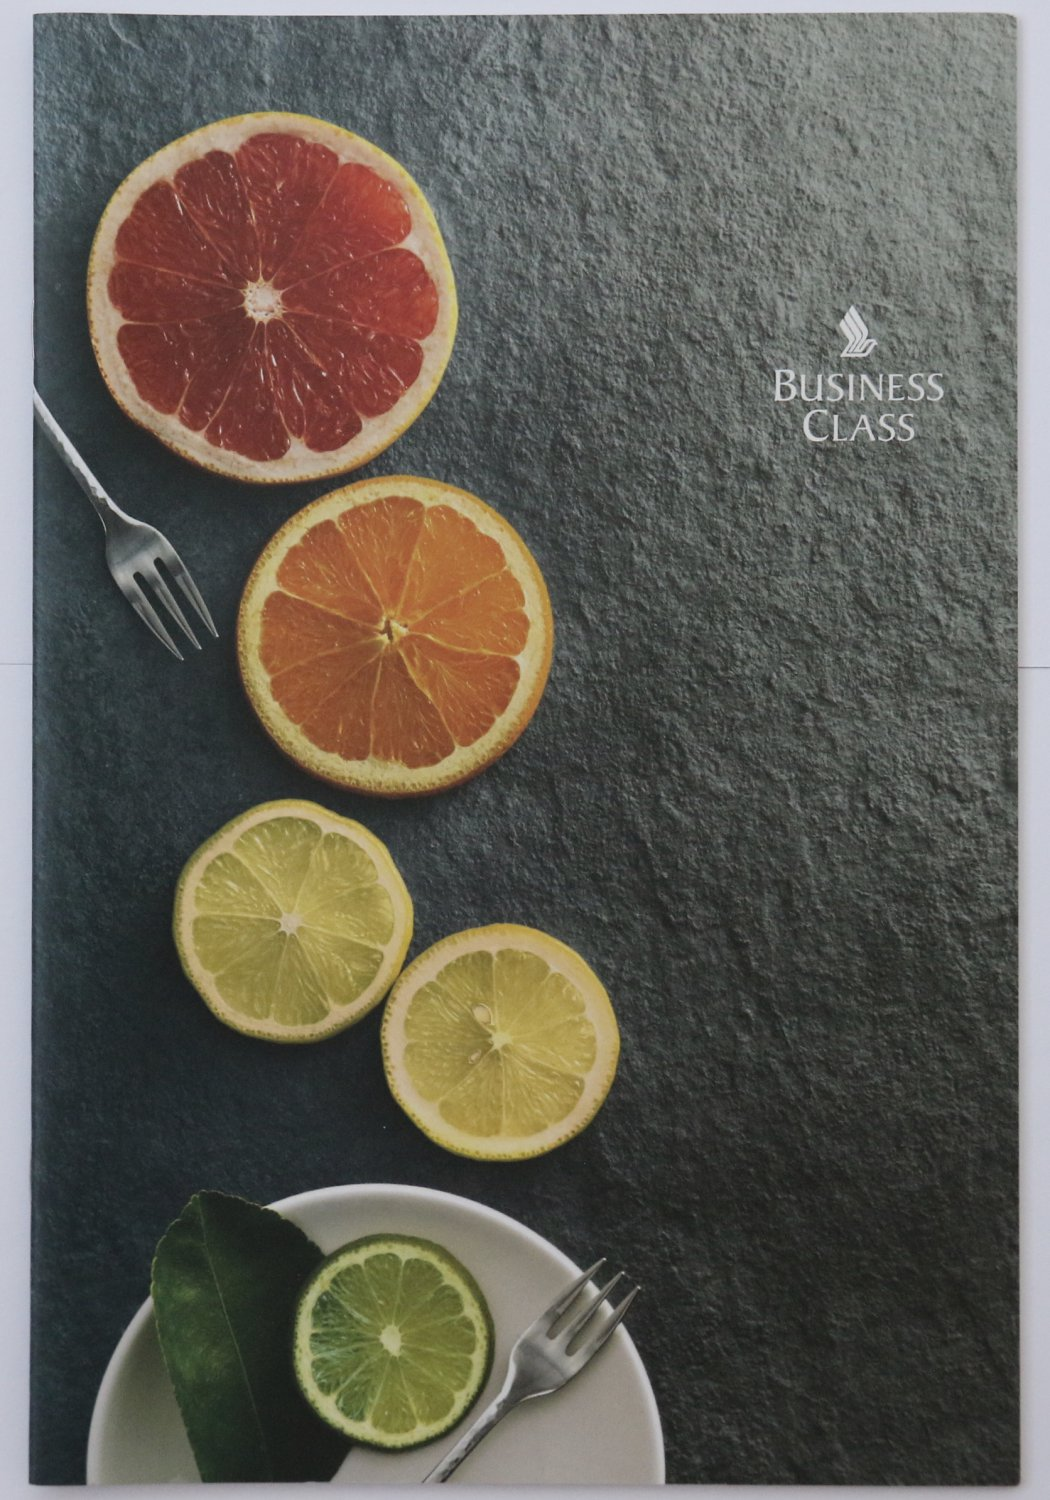 Singapore Airlines SQ362 Business Class Airline Menu SIN - DME - ARN 08 2019